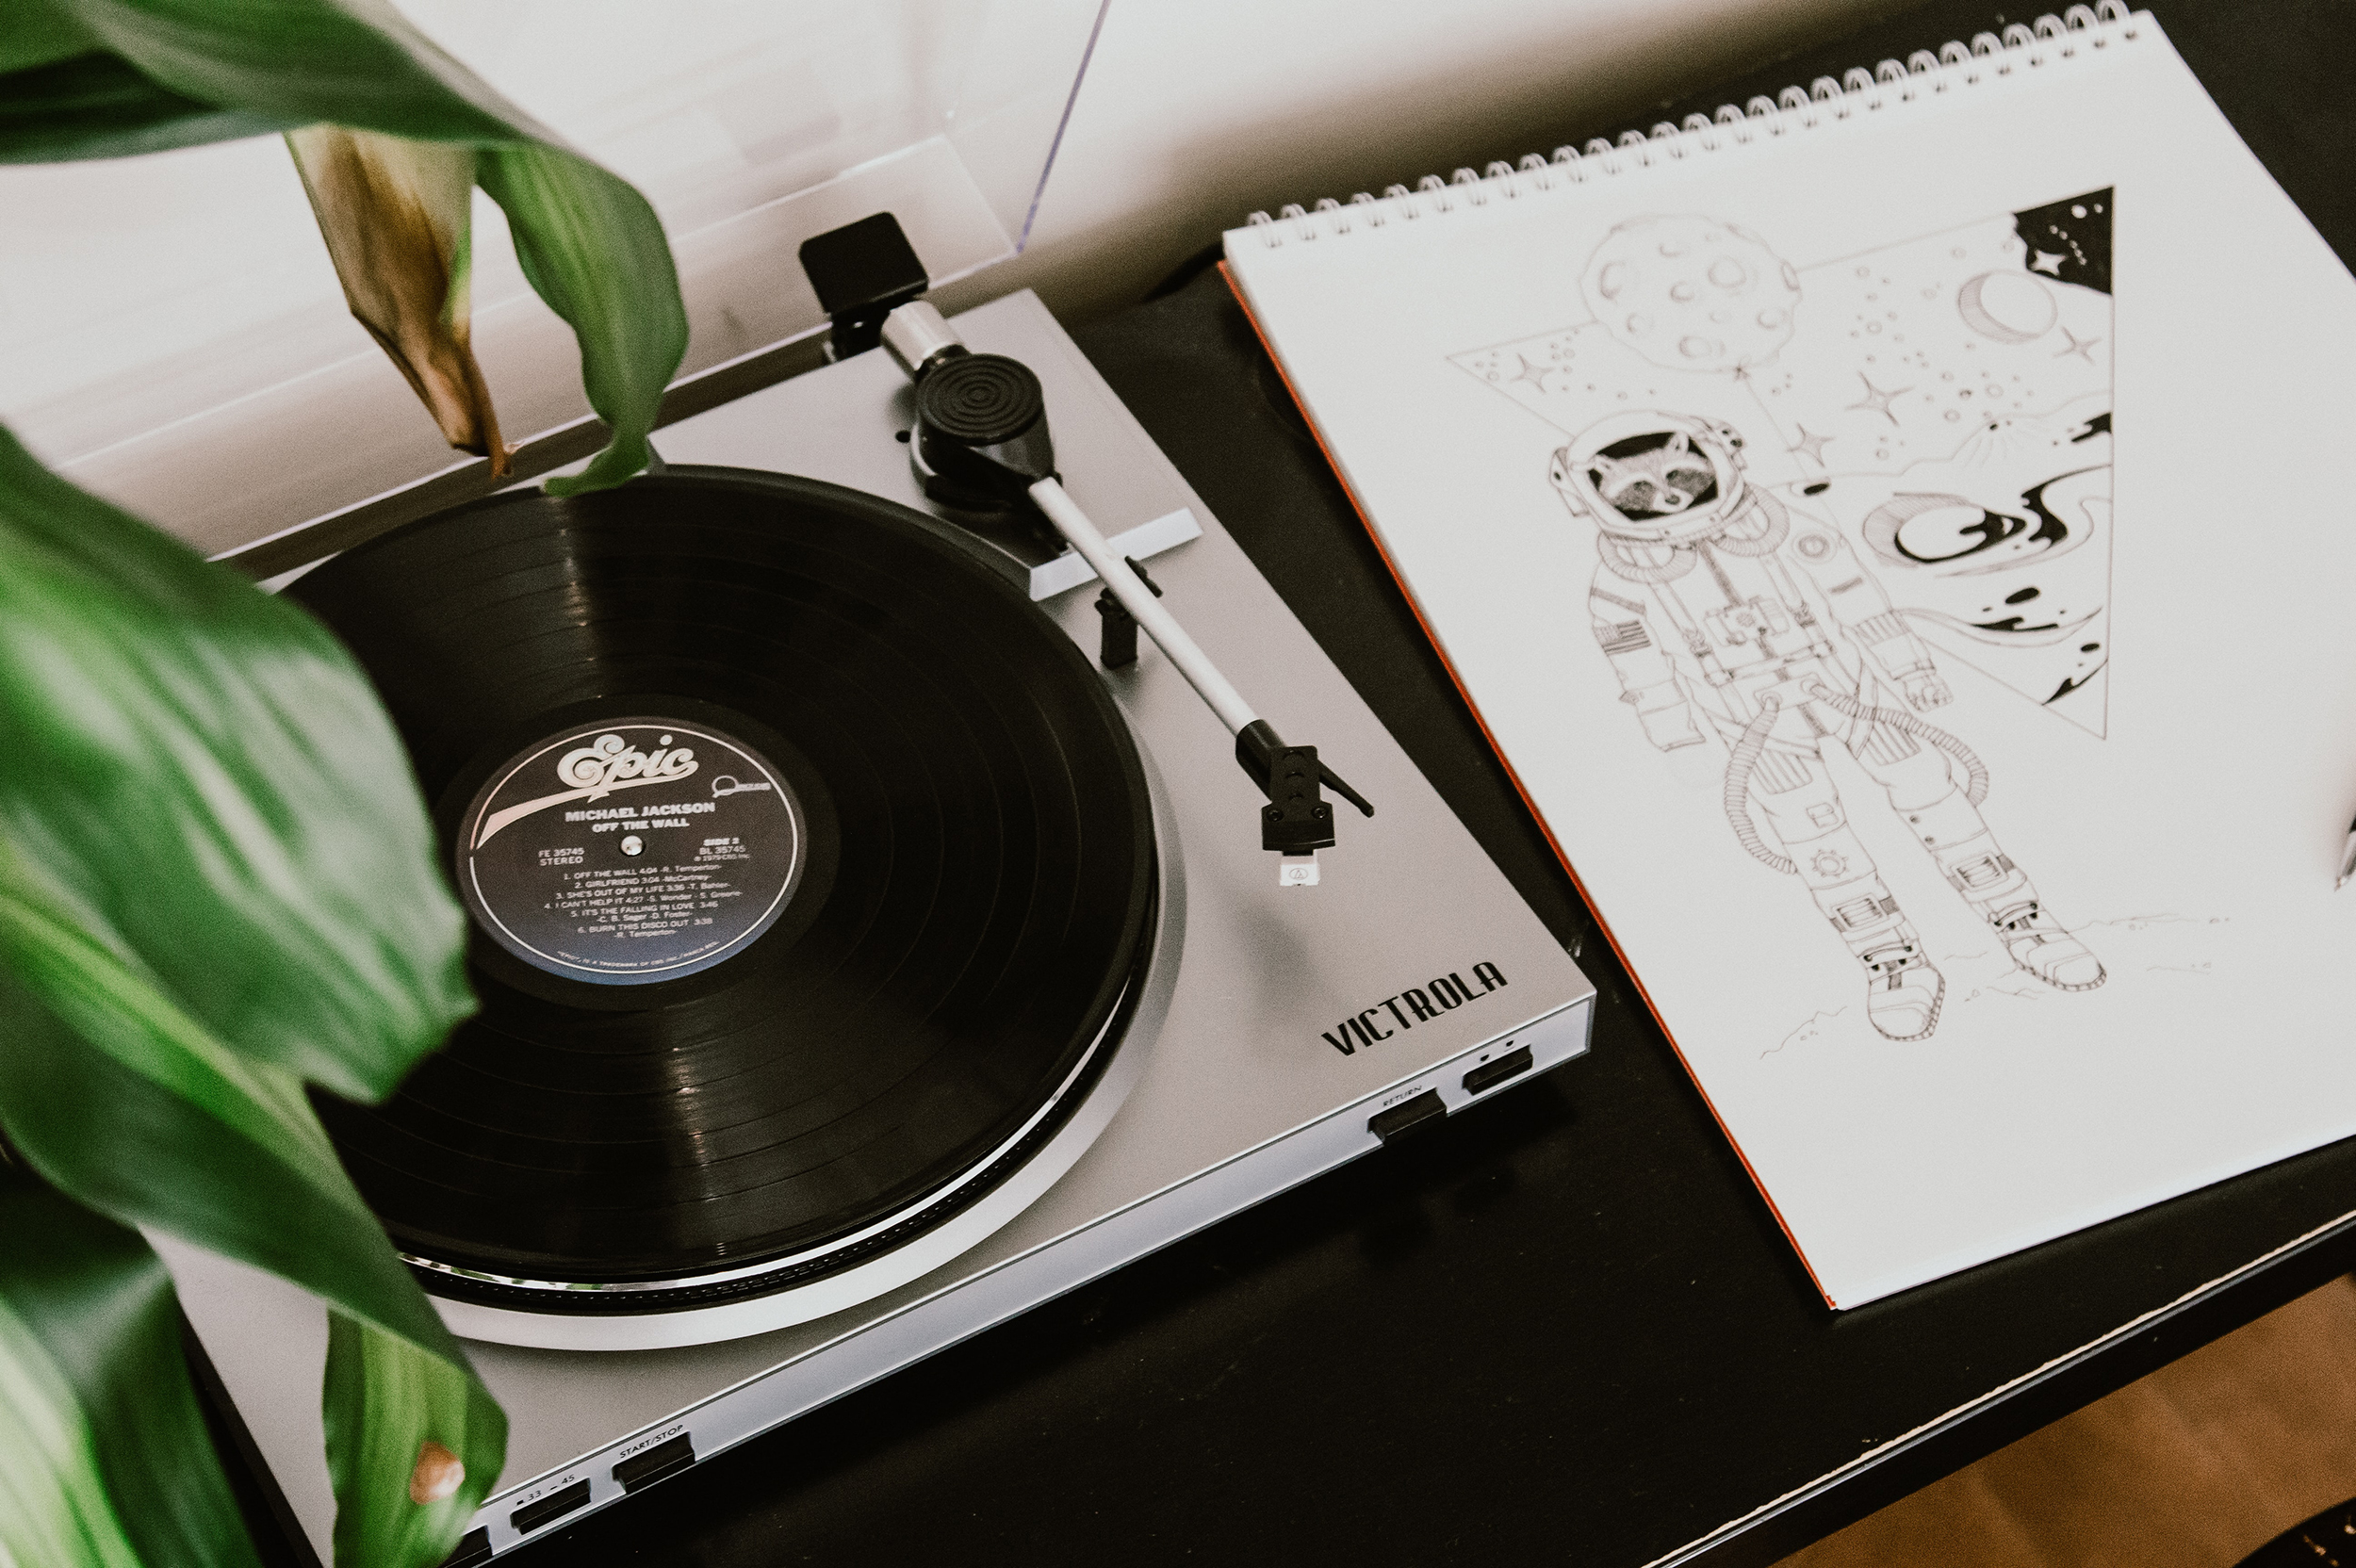 Record player next to a sketch pad.